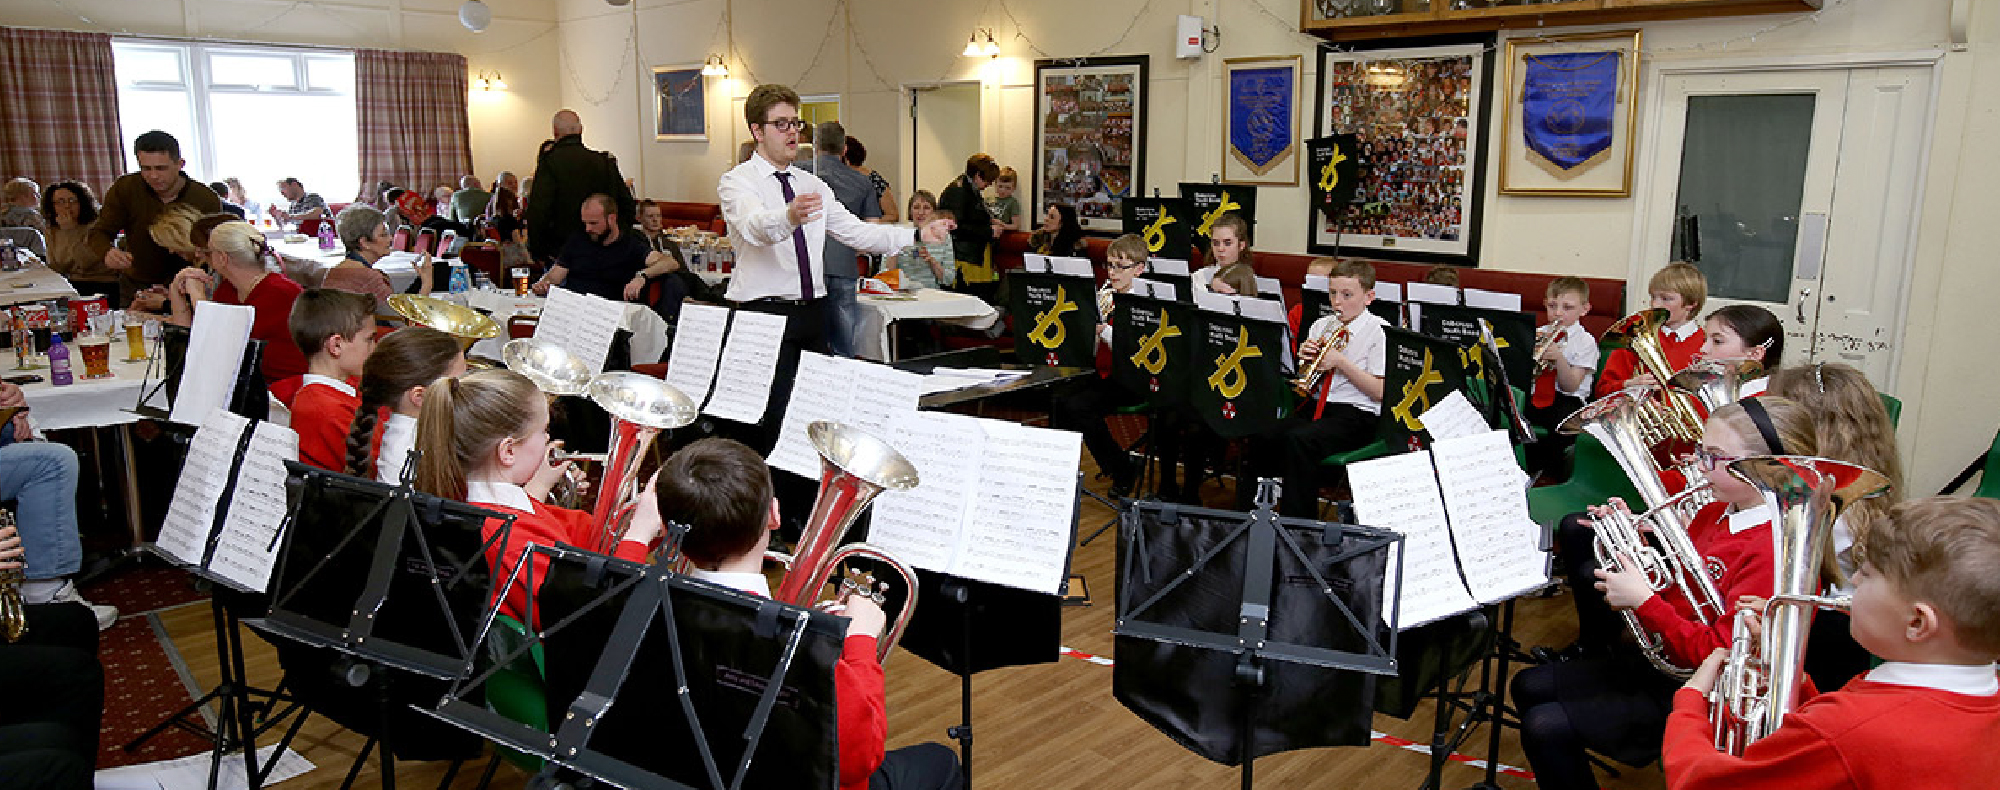 dobcross youth band news